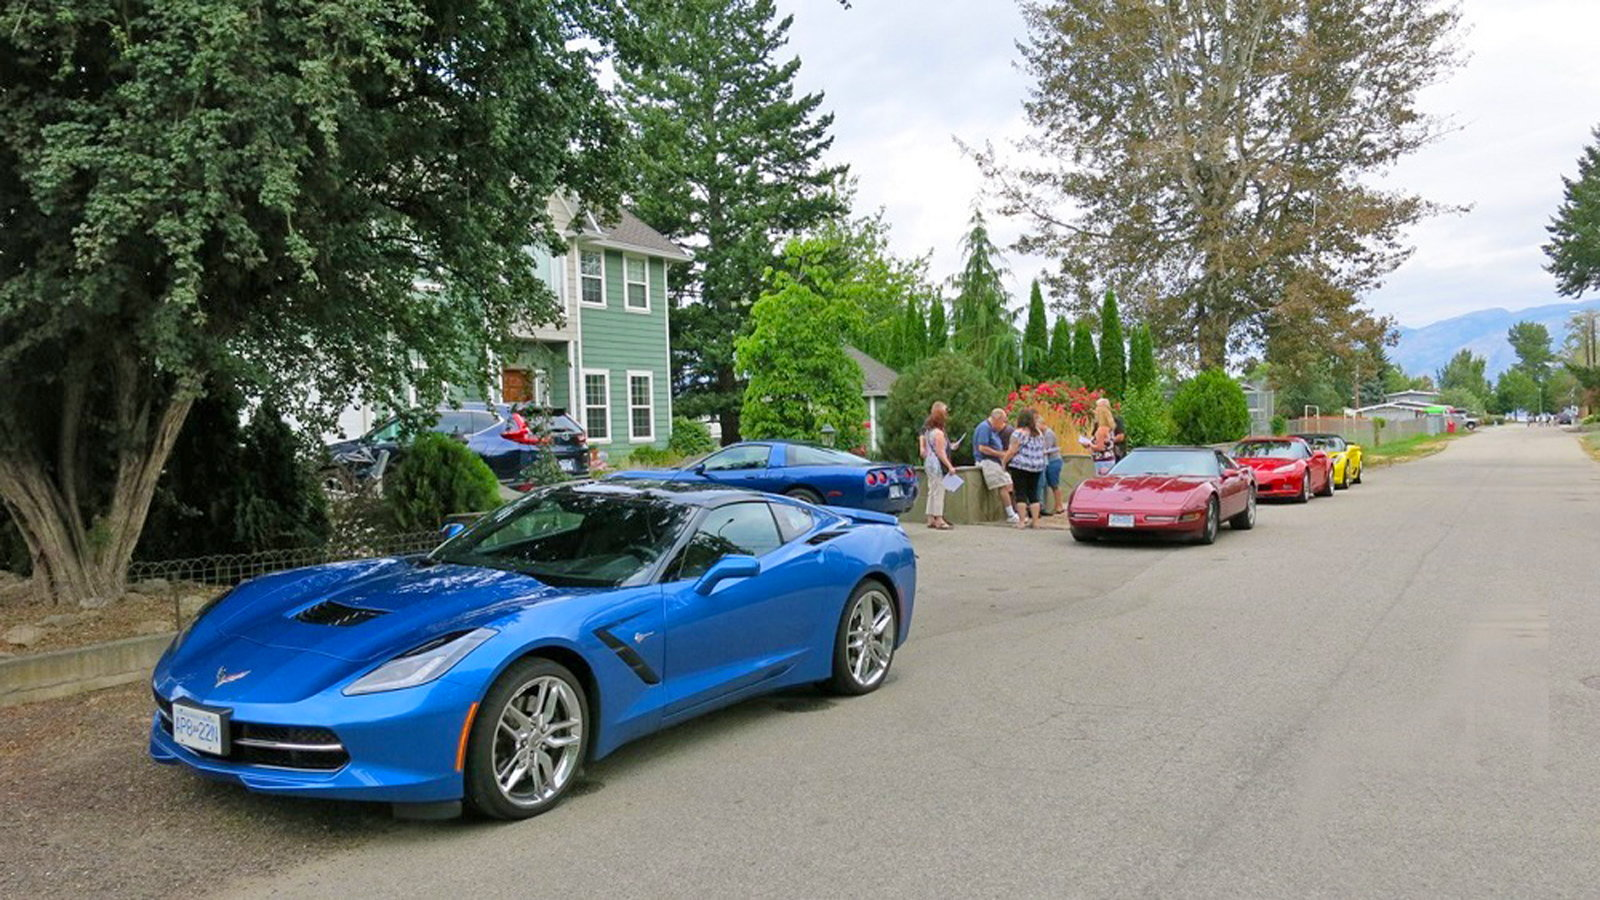 Take Your Corvette On A Canadian Drive This Summer